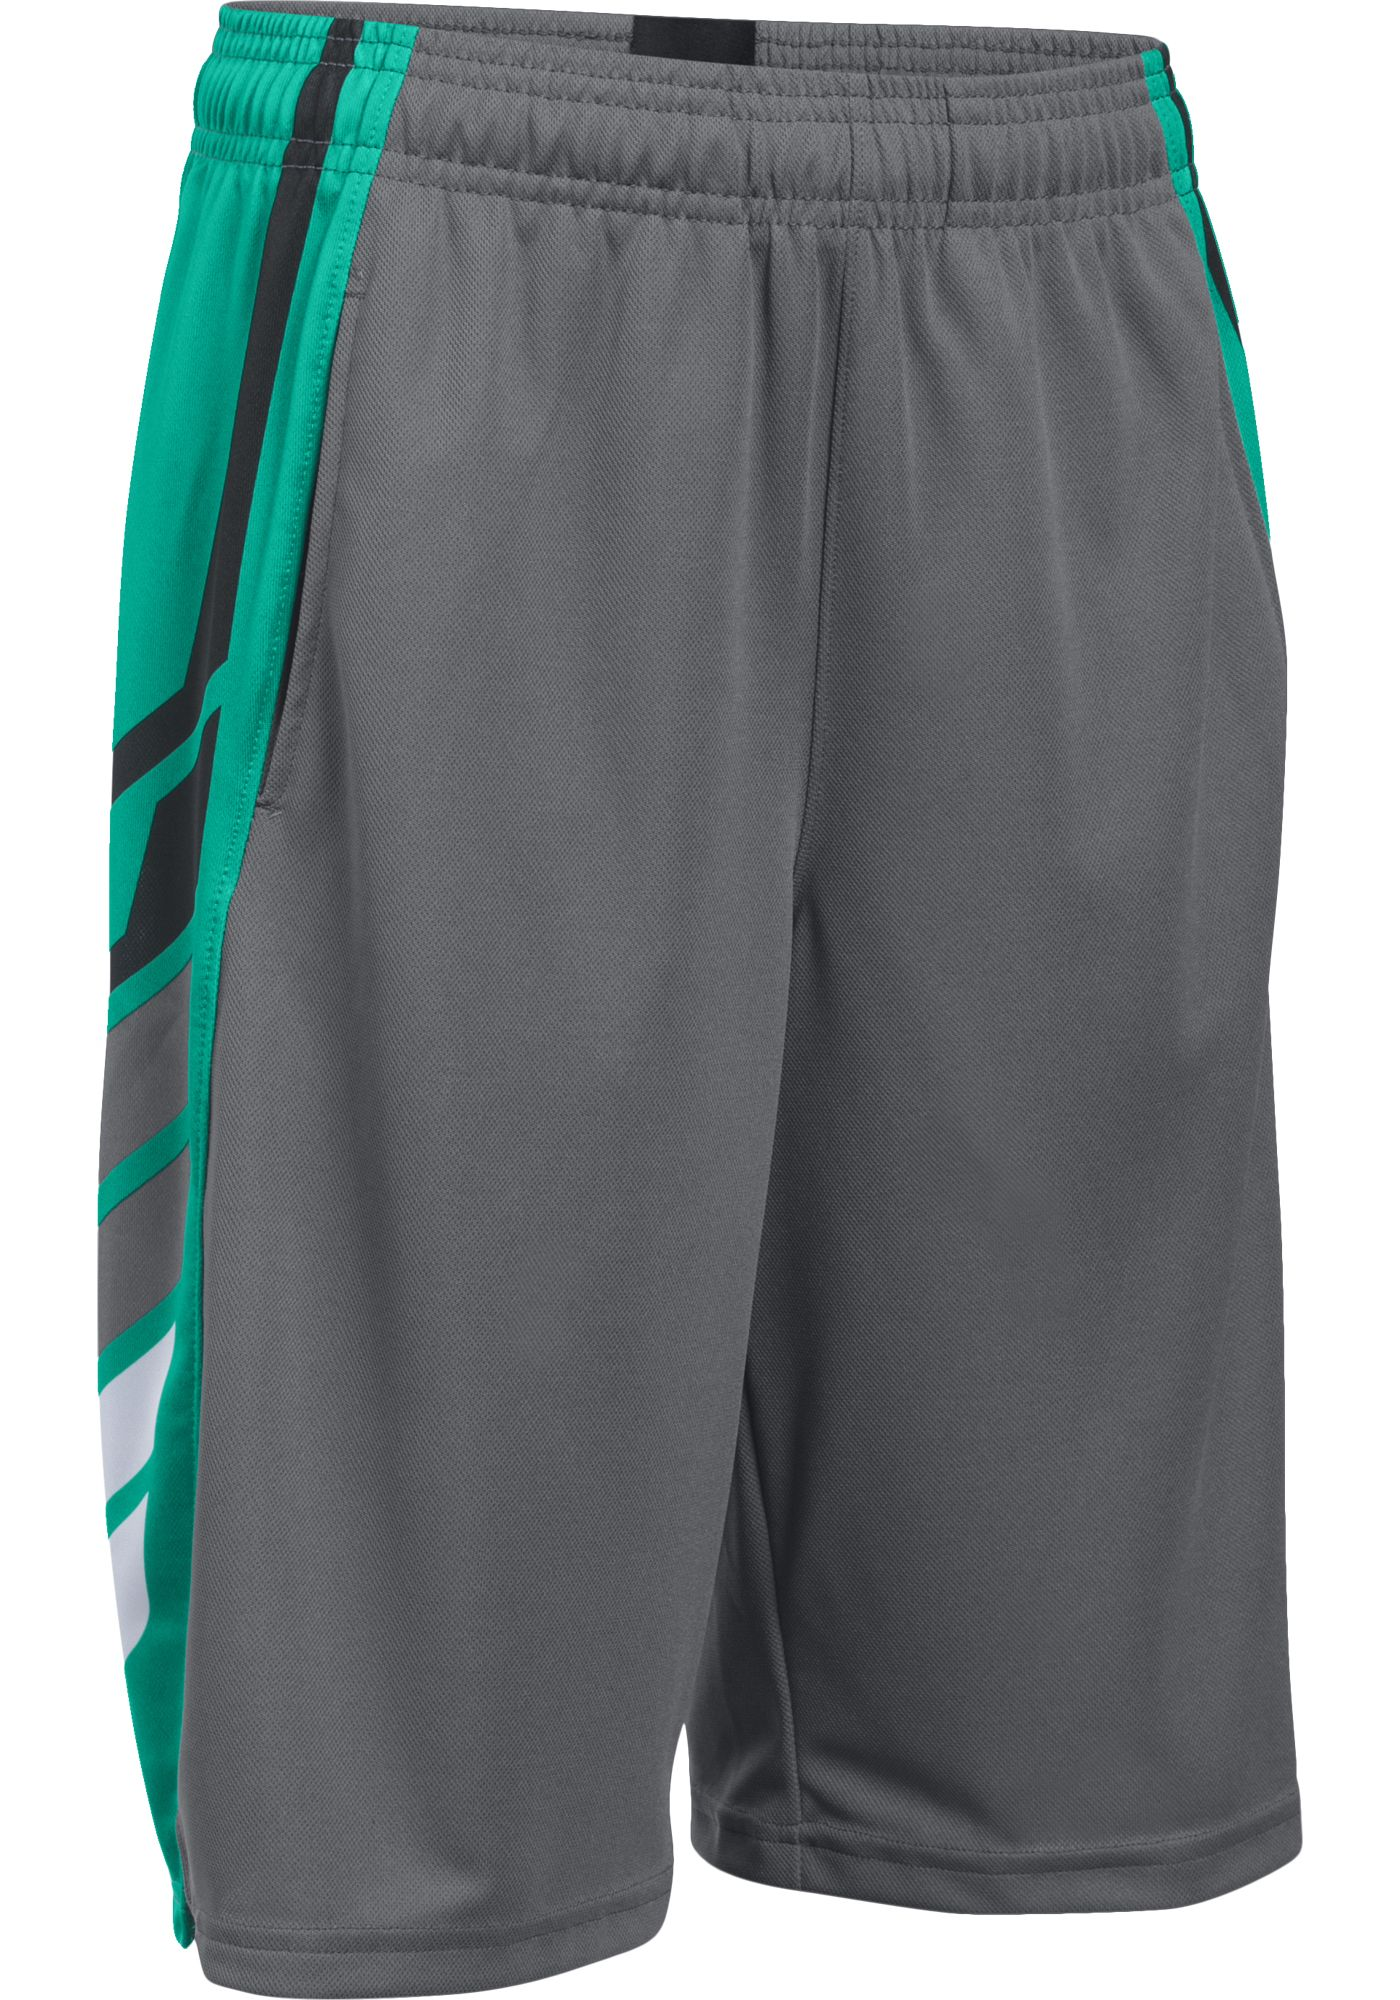 Under Armour Boys' Select Basketball Shorts